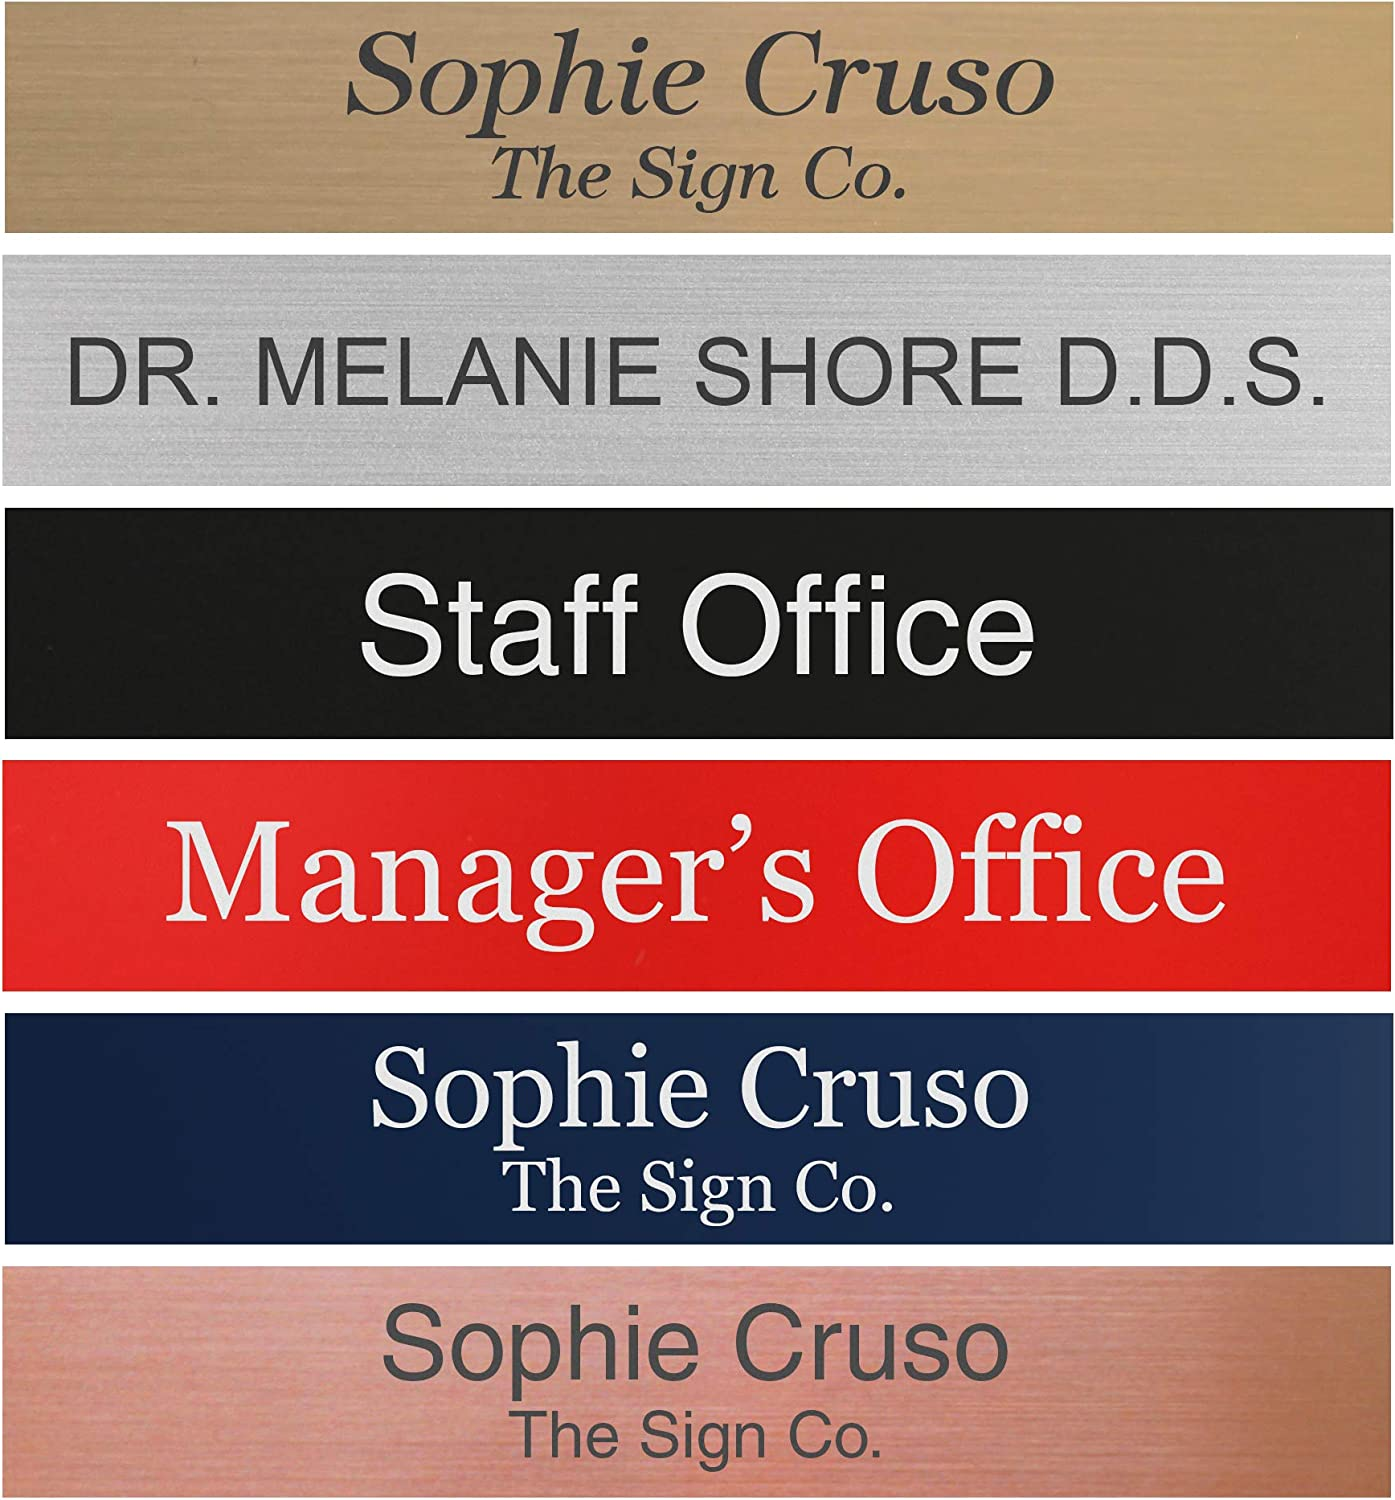 Personalized Name Plate Sign - 2x12 - Engraved - 24 Color Options - Customize